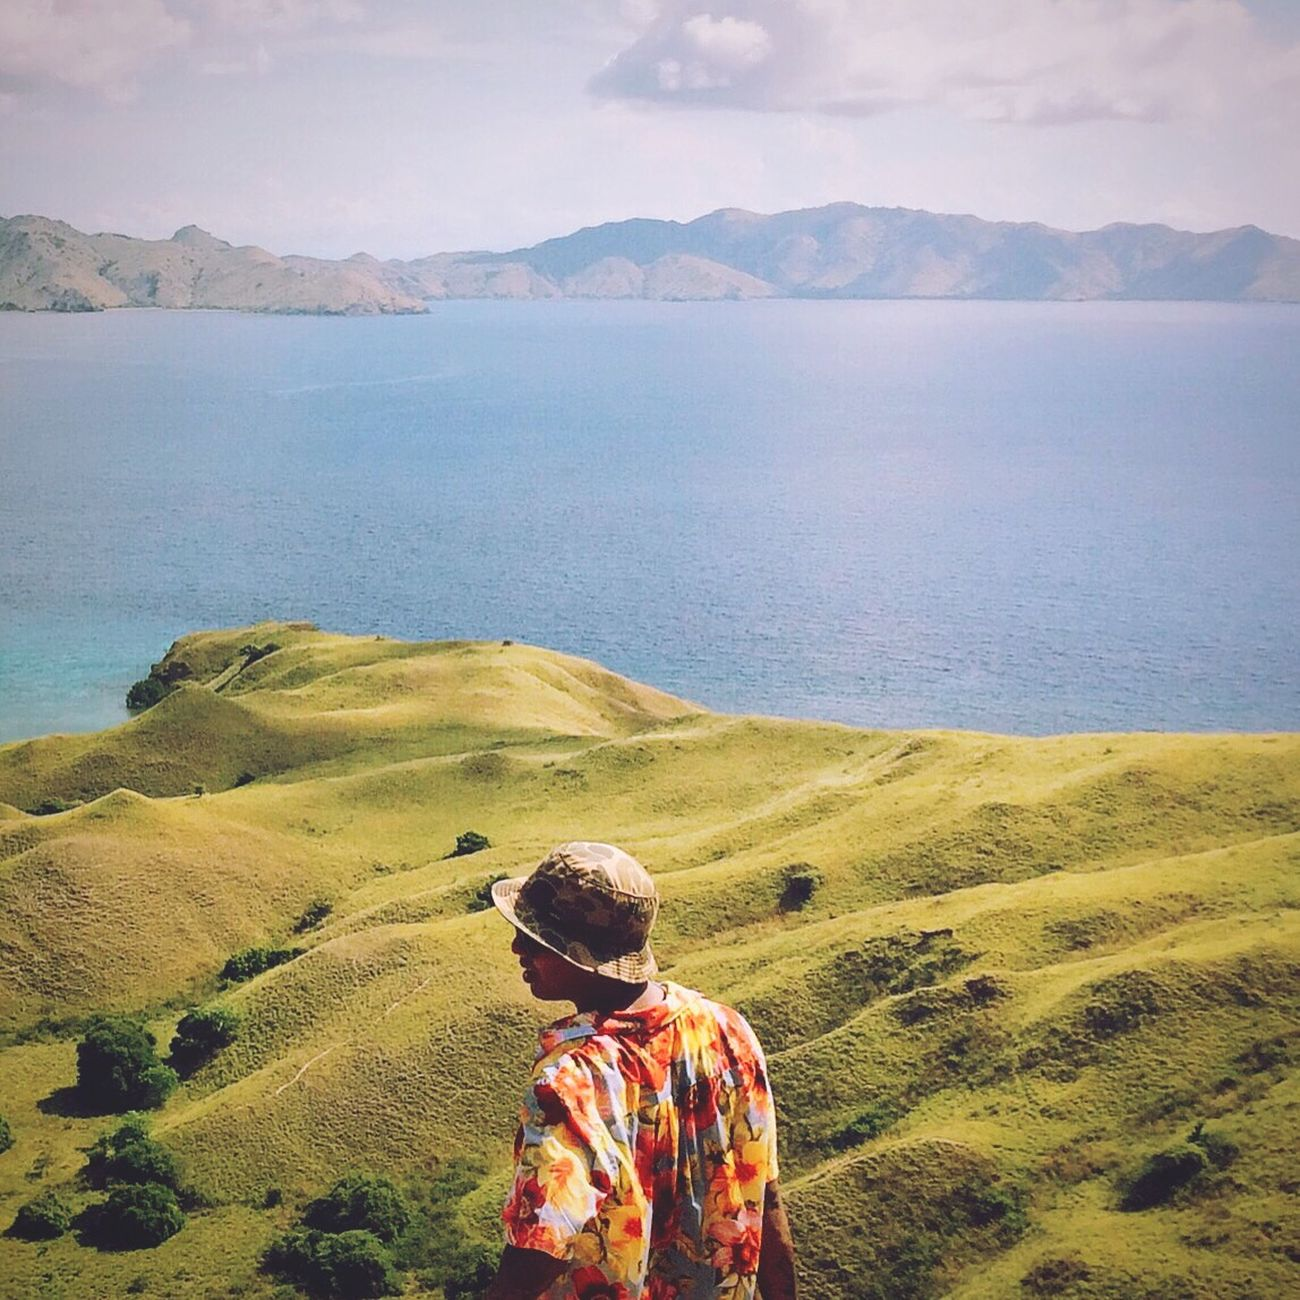 The View of Gili Laba The Great Outdoors With Adobe The Great Outdoors - 2015 EyeEm Awards The Traveler - 2015 EyeEm Awards Open Edit INDONESIA EyeEm Best Shots Enjoying Life Colour Of Life